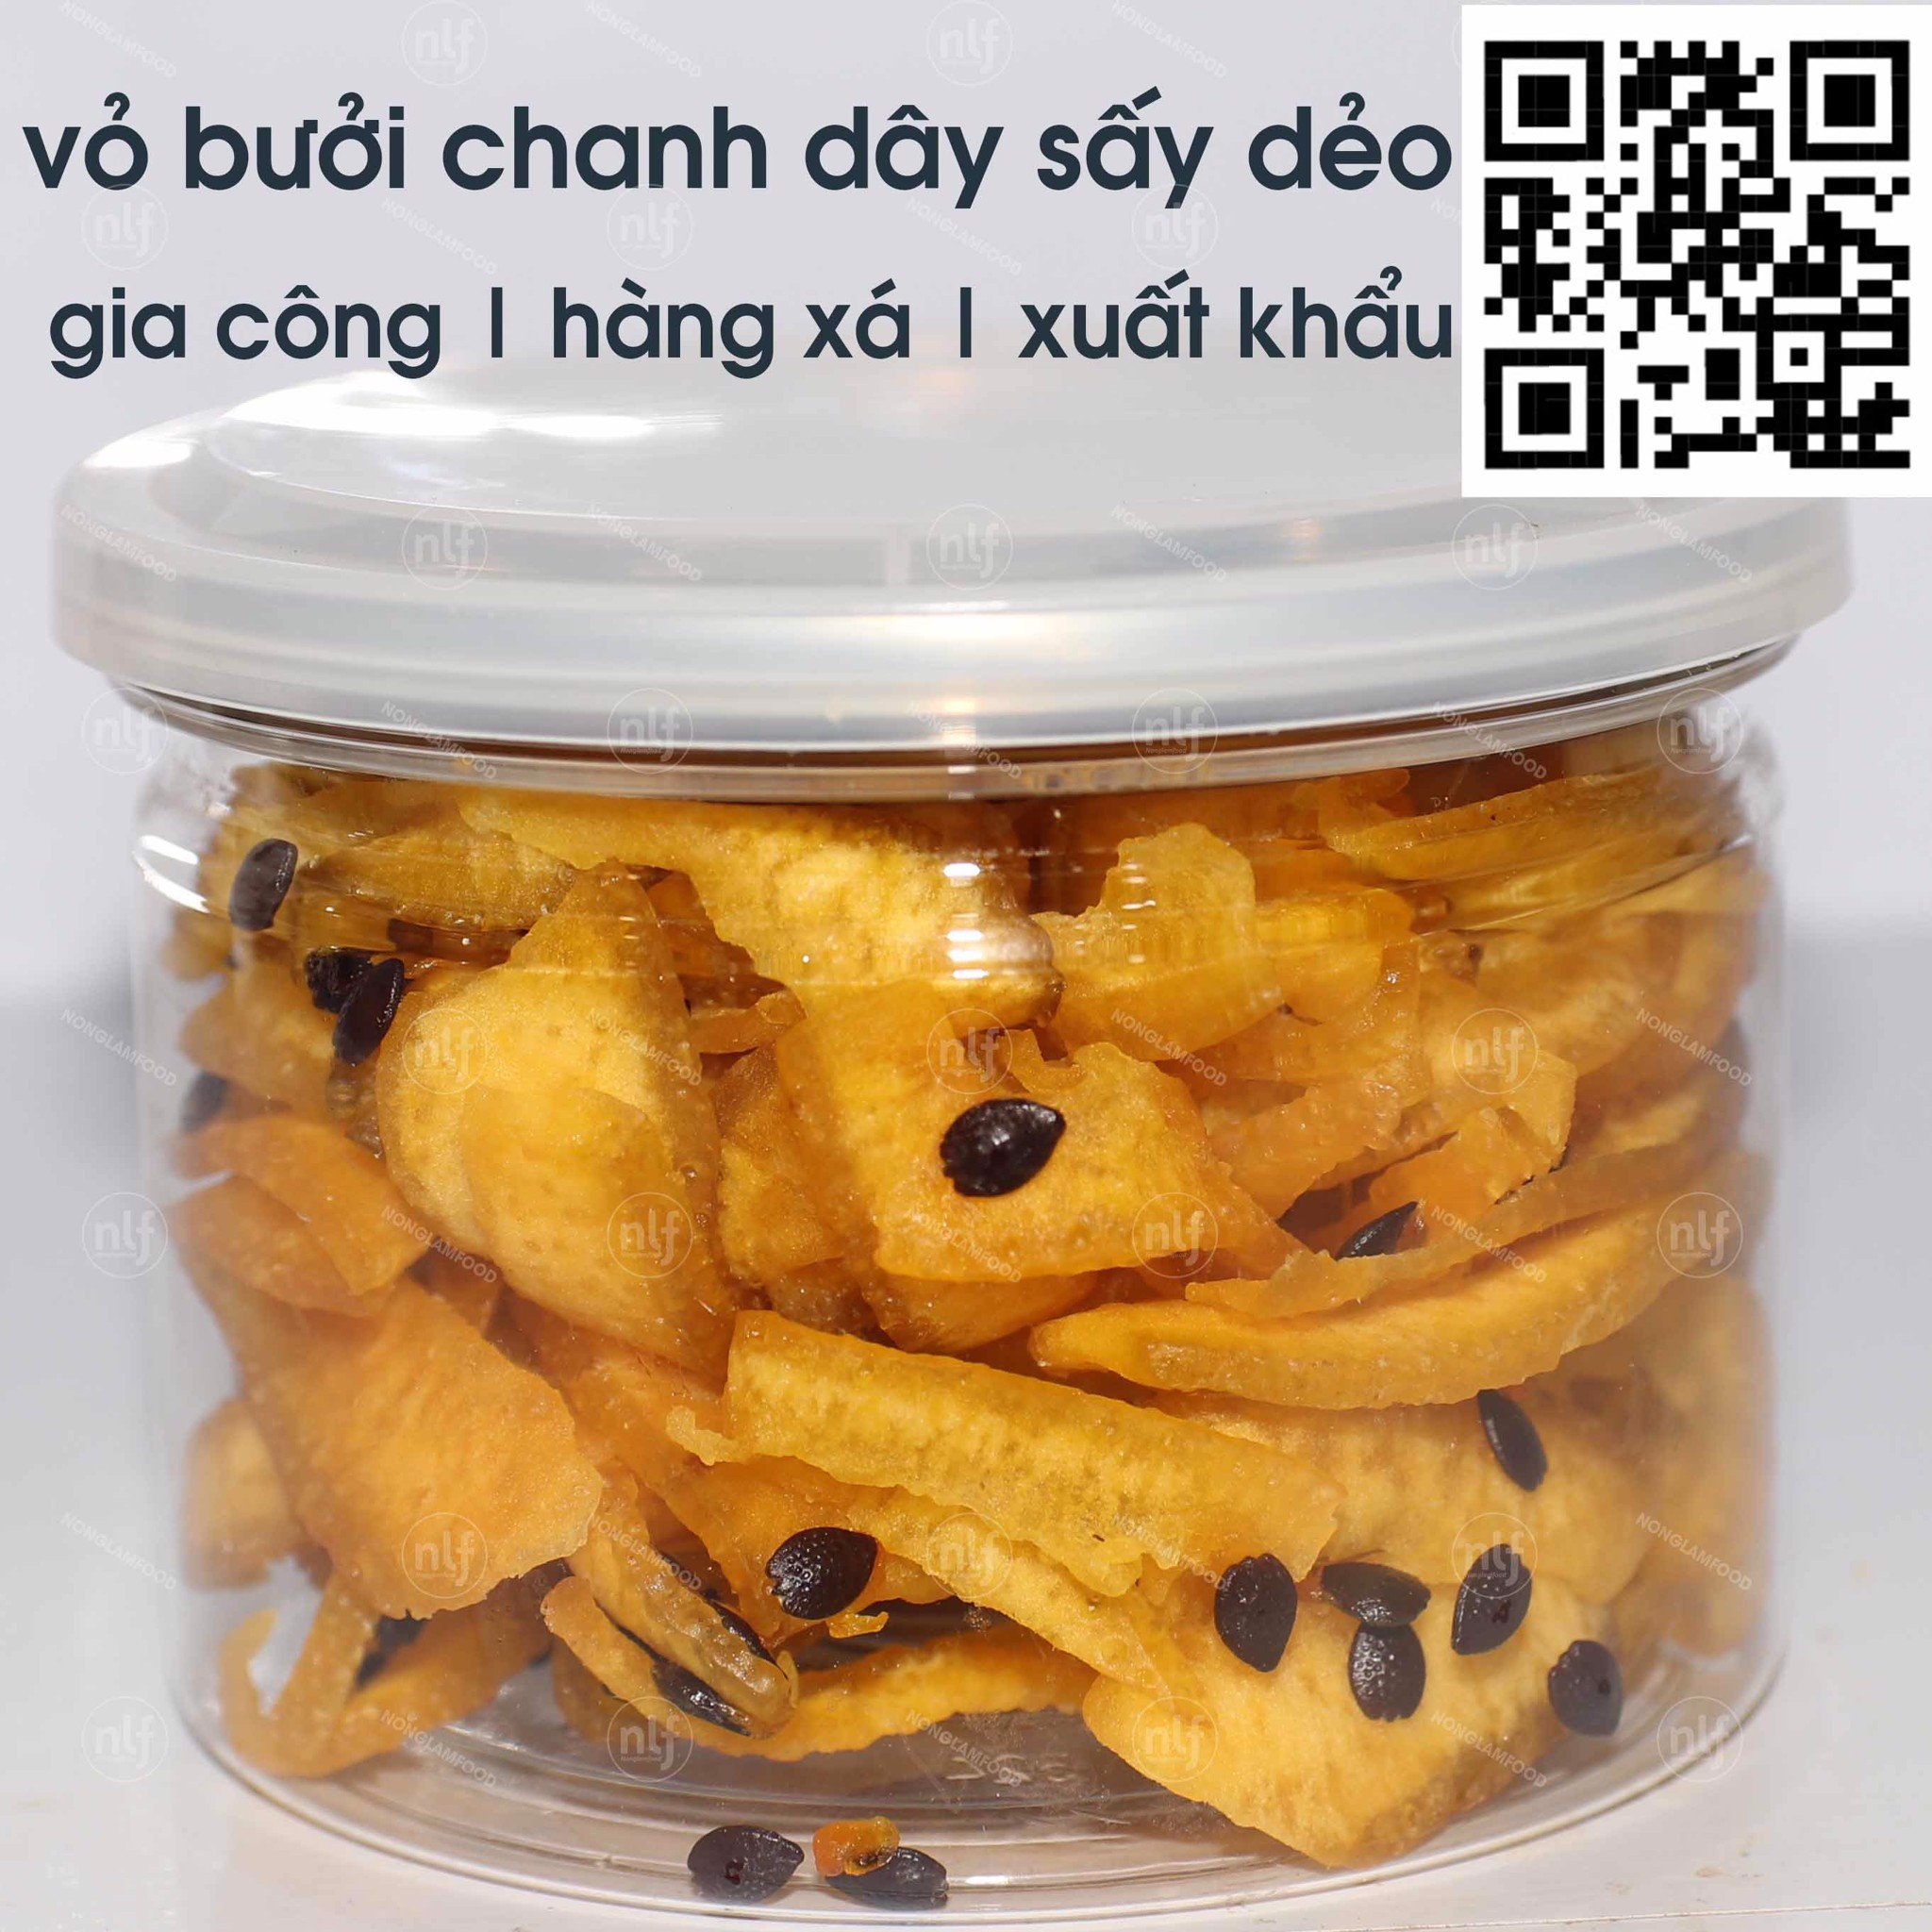 Dried Pomelo peel with Pasion Fruit | Vỏ bưởi Chanh Dây Sấy Dẻo 1kg